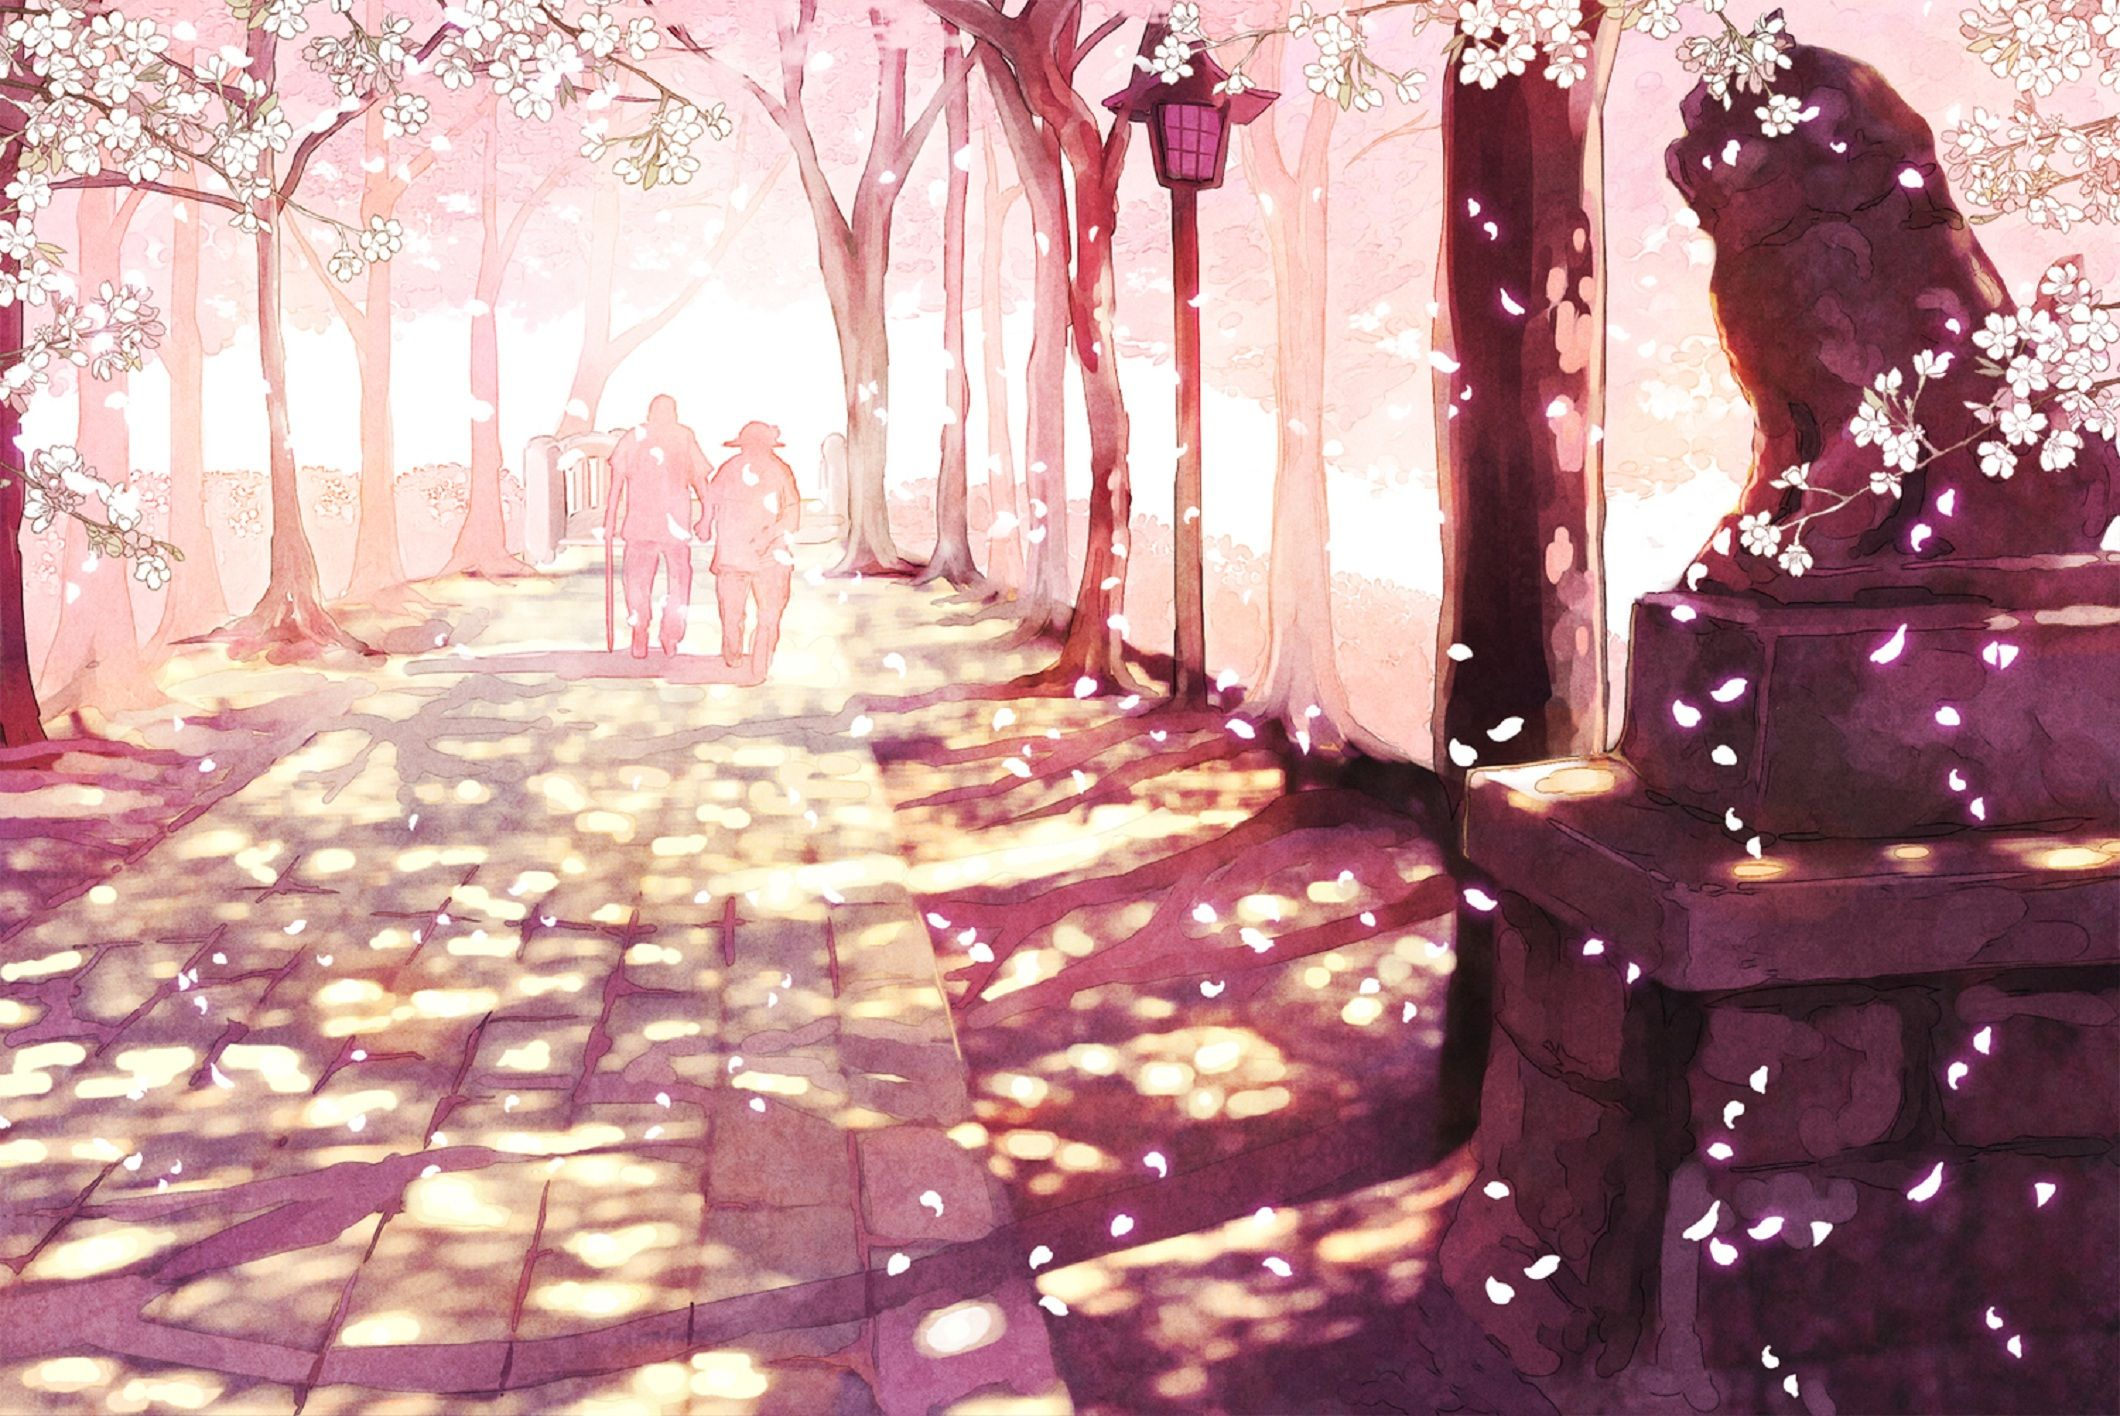 Sakura Anime Scenery Wallpaper Desktop 52782 1768 Wallpaper Anime Backgrounds Wallpapers Anime Scenery Wallpaper Anime Background